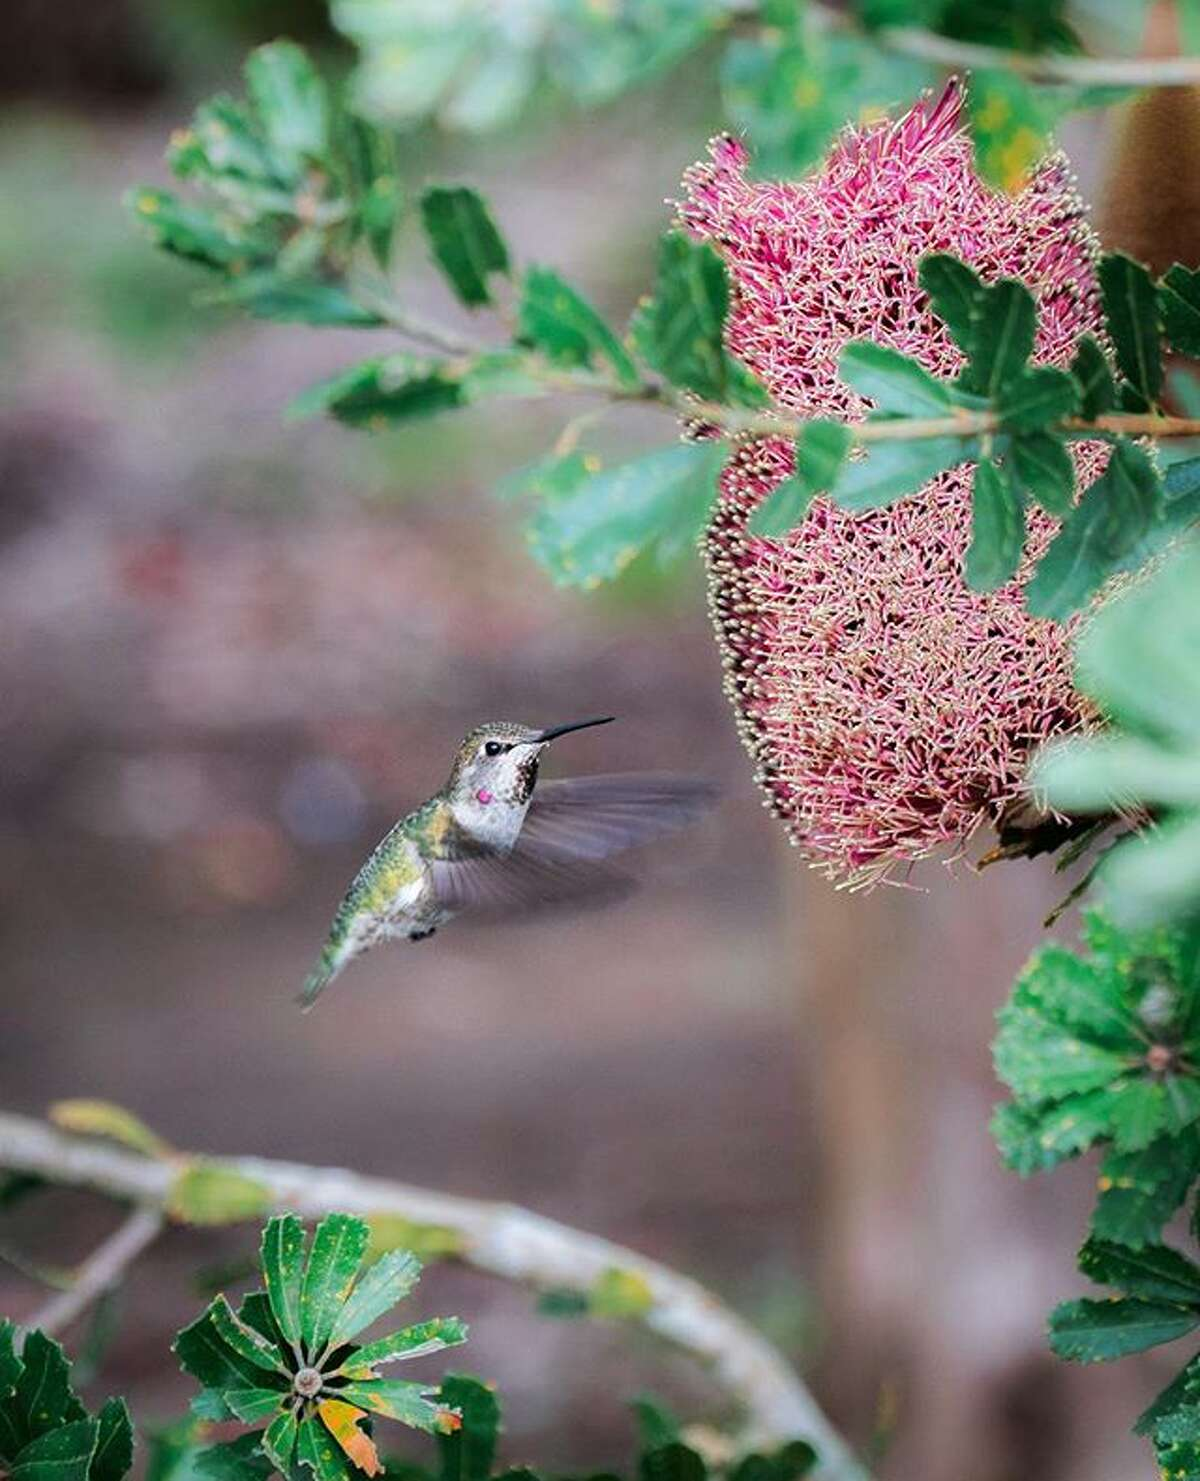 @eugeneling_ photographed a never stopping hummingbird in SF's Botanical Garden.